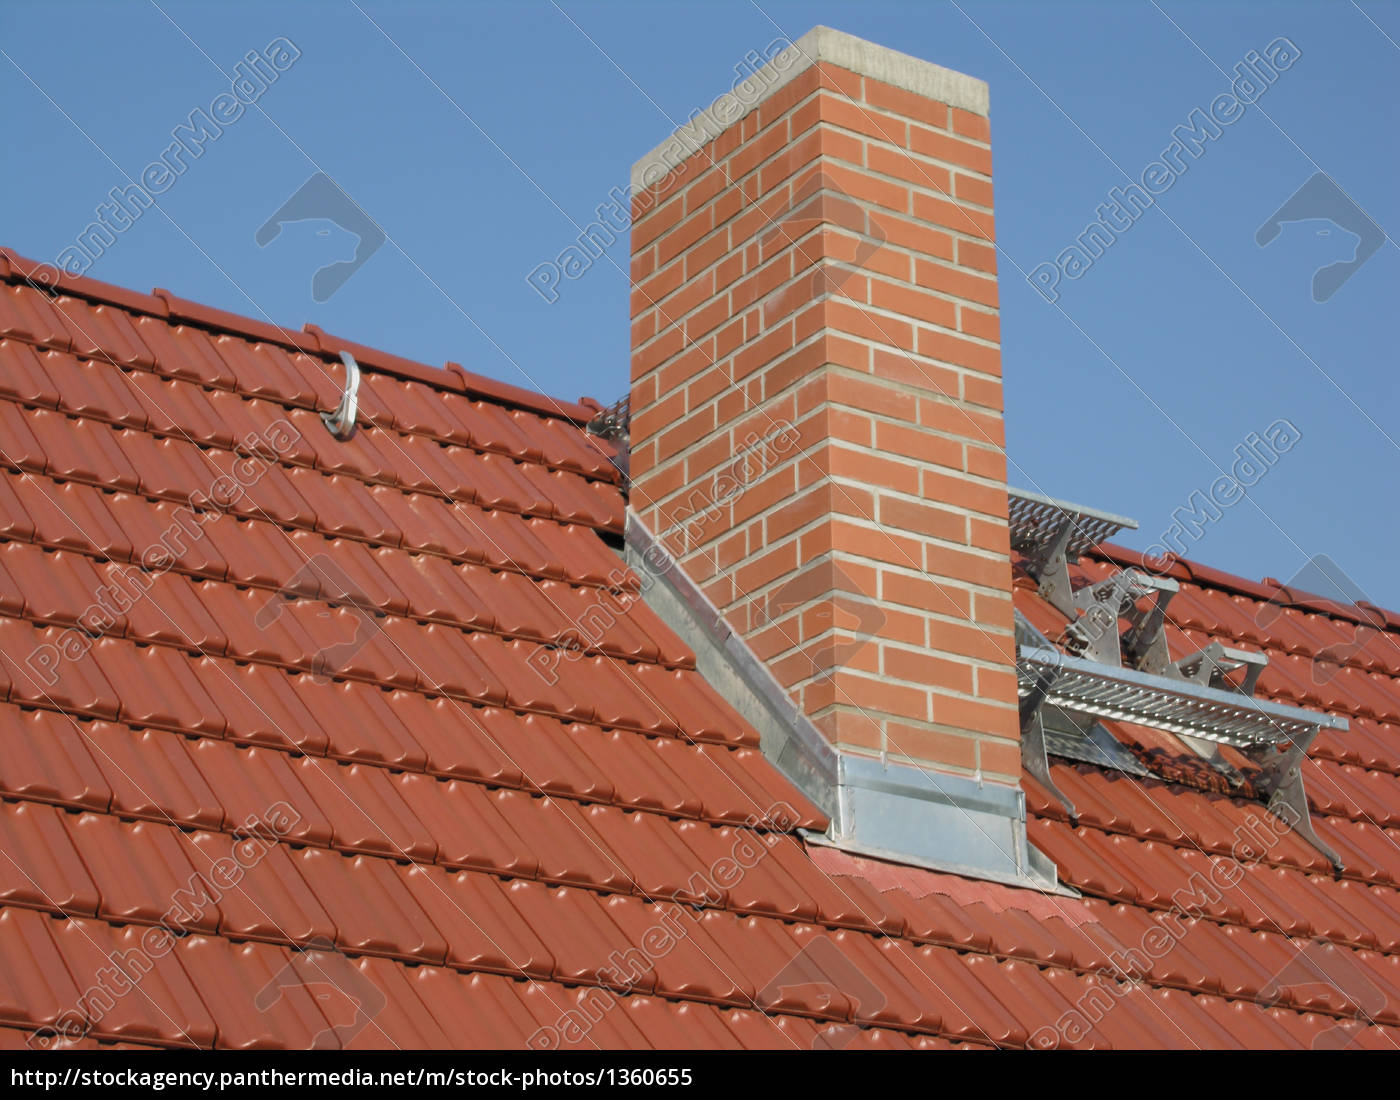 roofing, architecture, roofing, chimney - 1360655